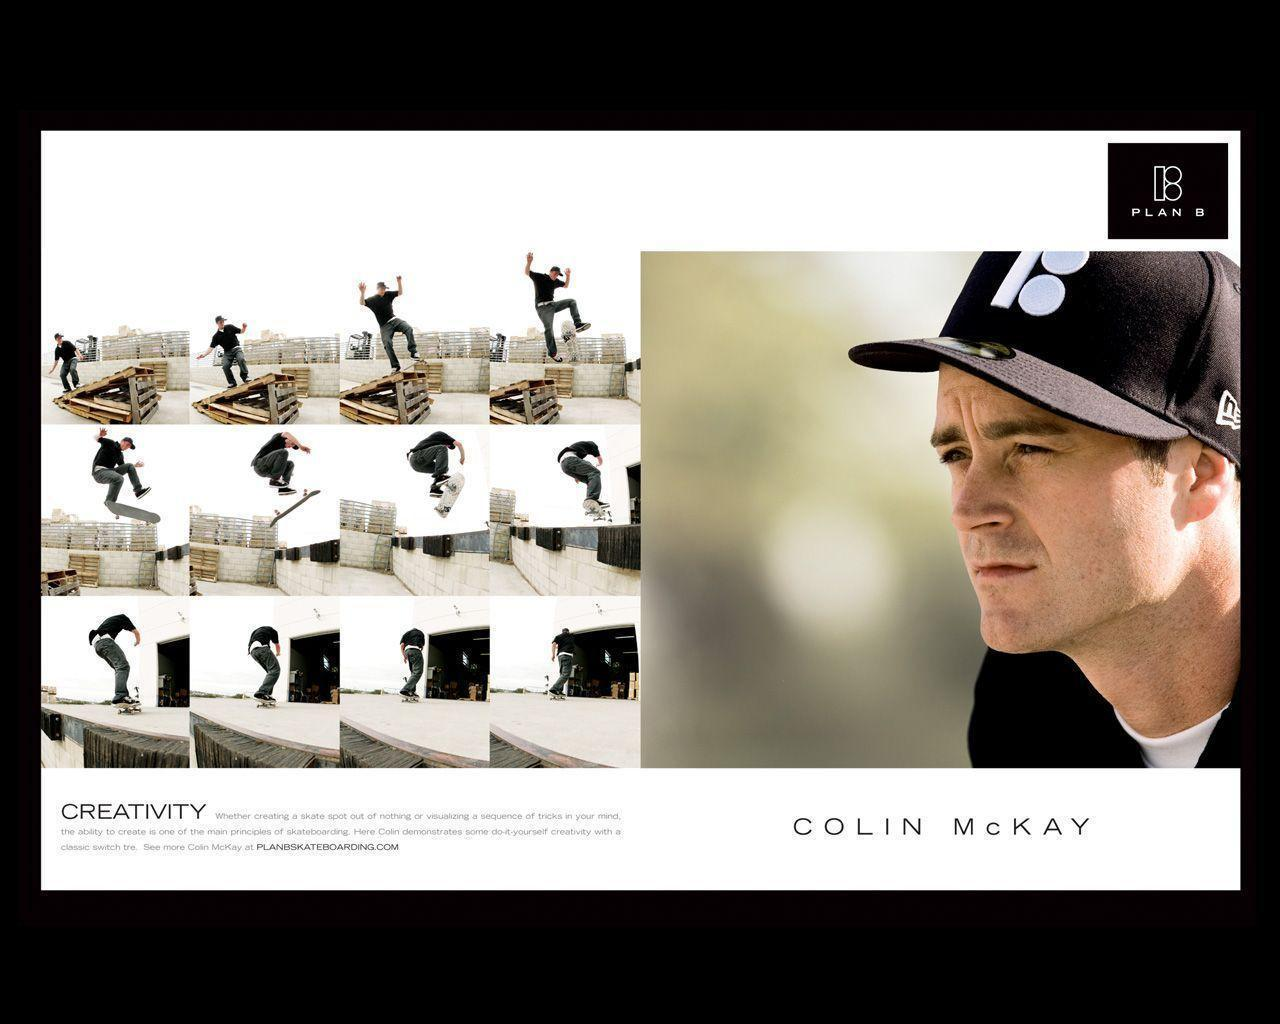 Free Colin McKay On Plan B Wallpapers, Free Colin McKay On Plan B